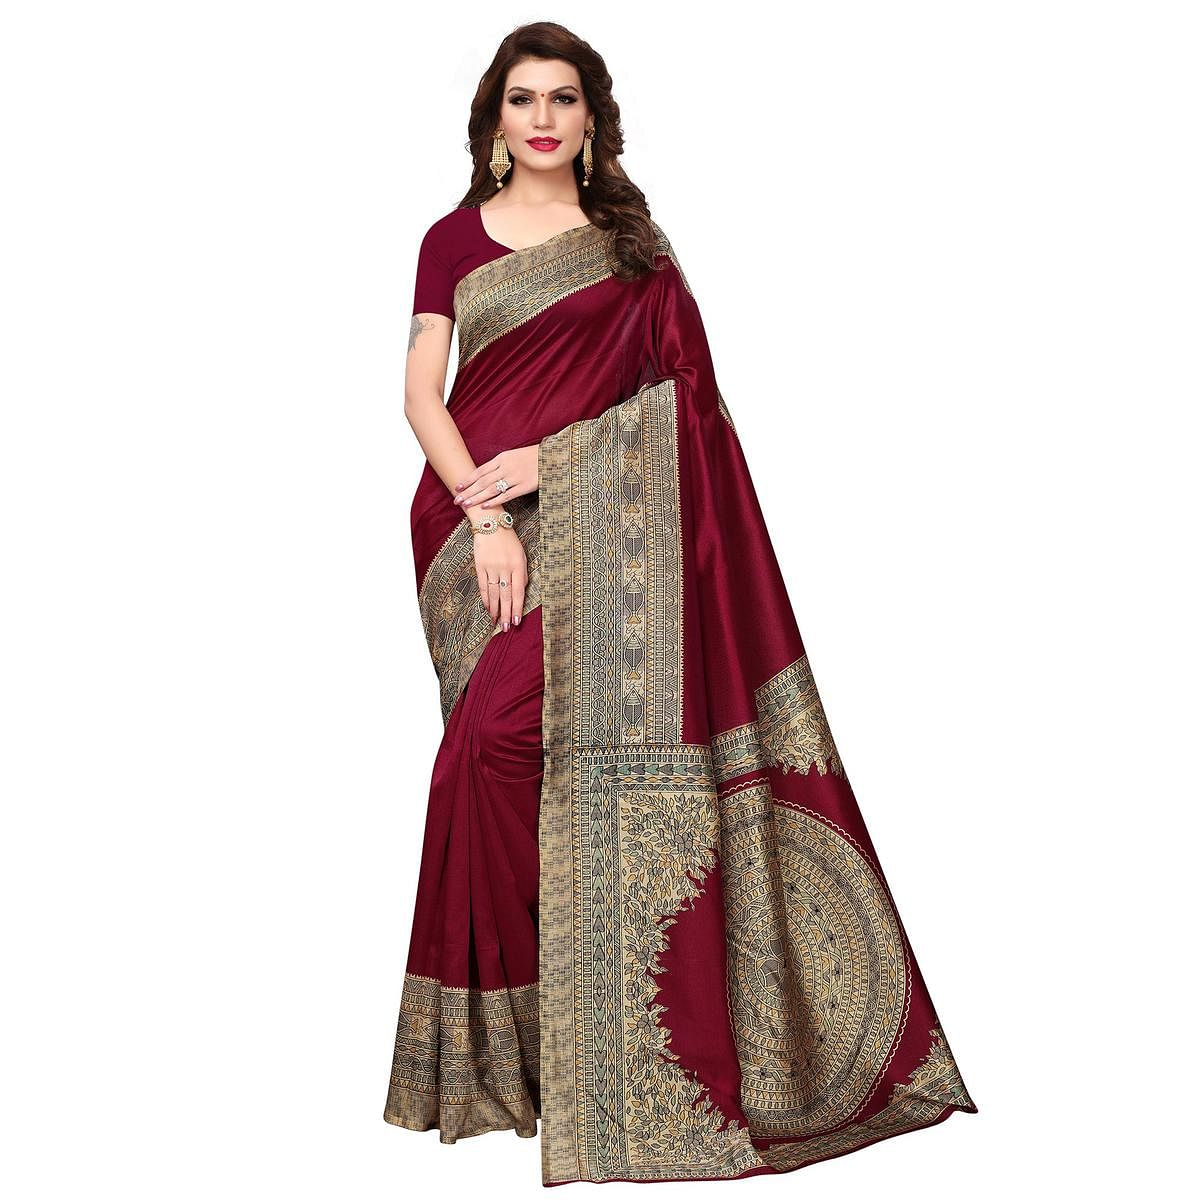 Stunning Maroon Colored Festive Wear Printed Art Silk Saree